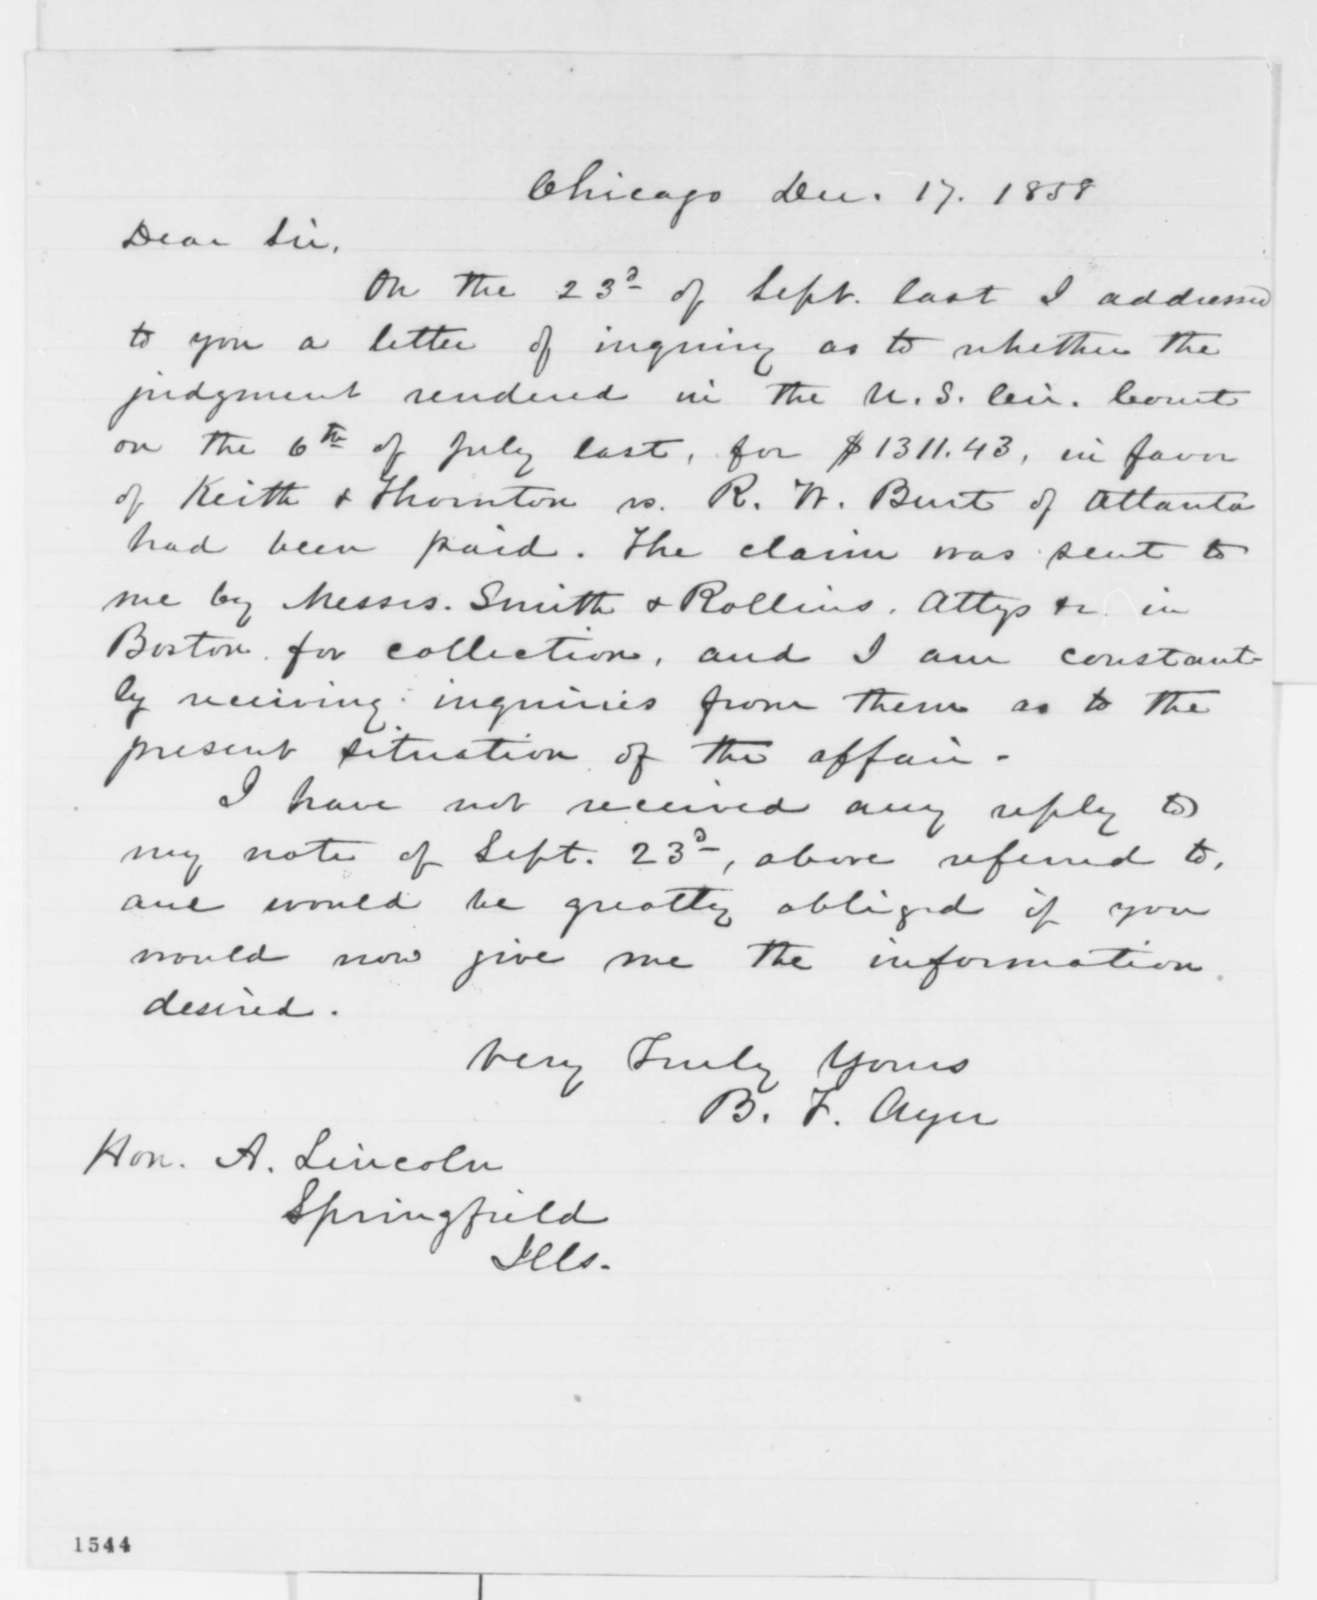 B. F. Ayer to Abraham Lincoln, Friday, December 17, 1858  (Legal matters)